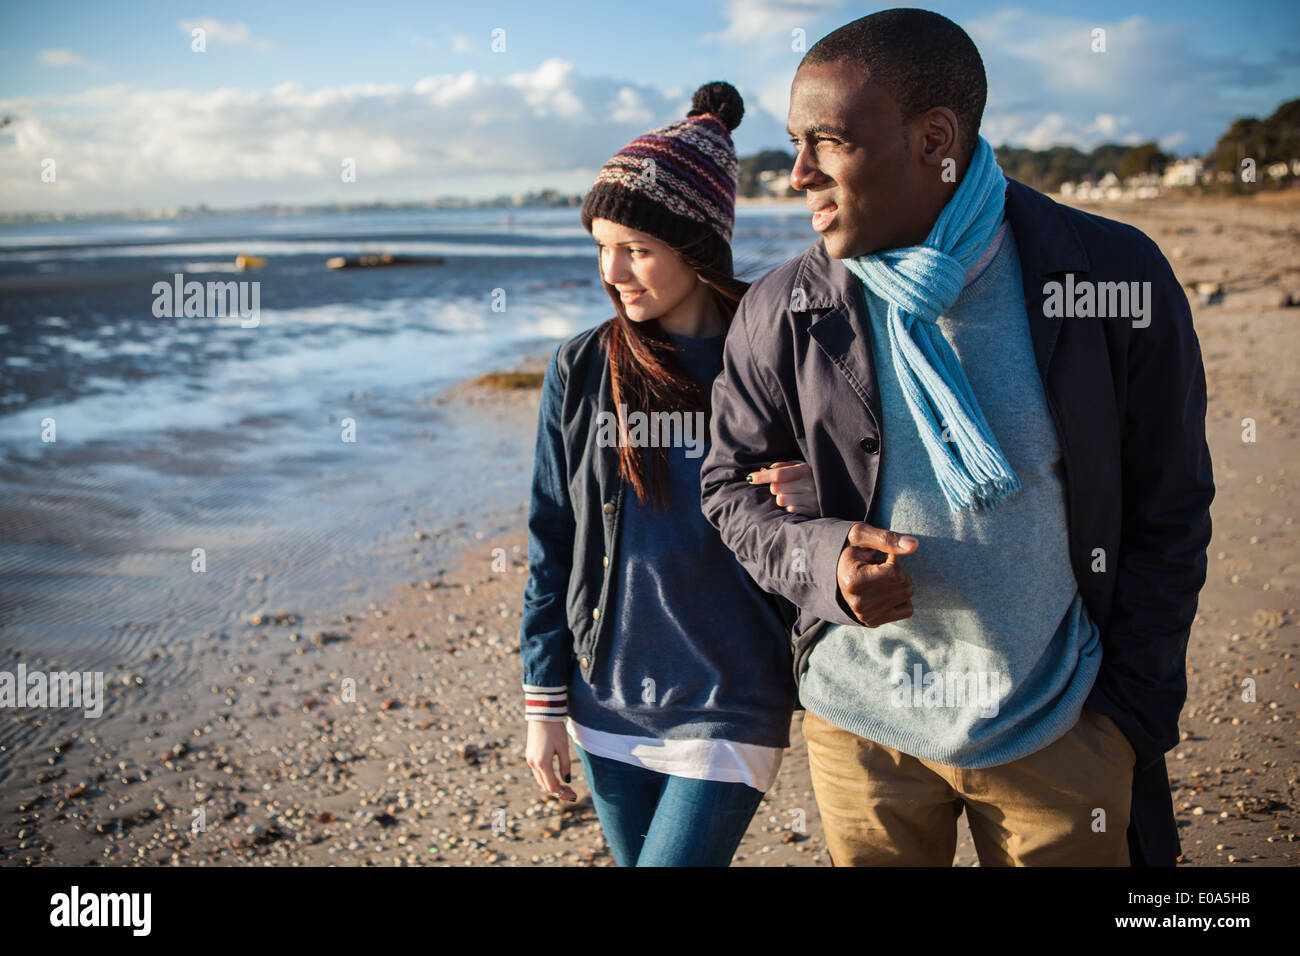 Romantic young couple arm in arm on the beach - Stock Image